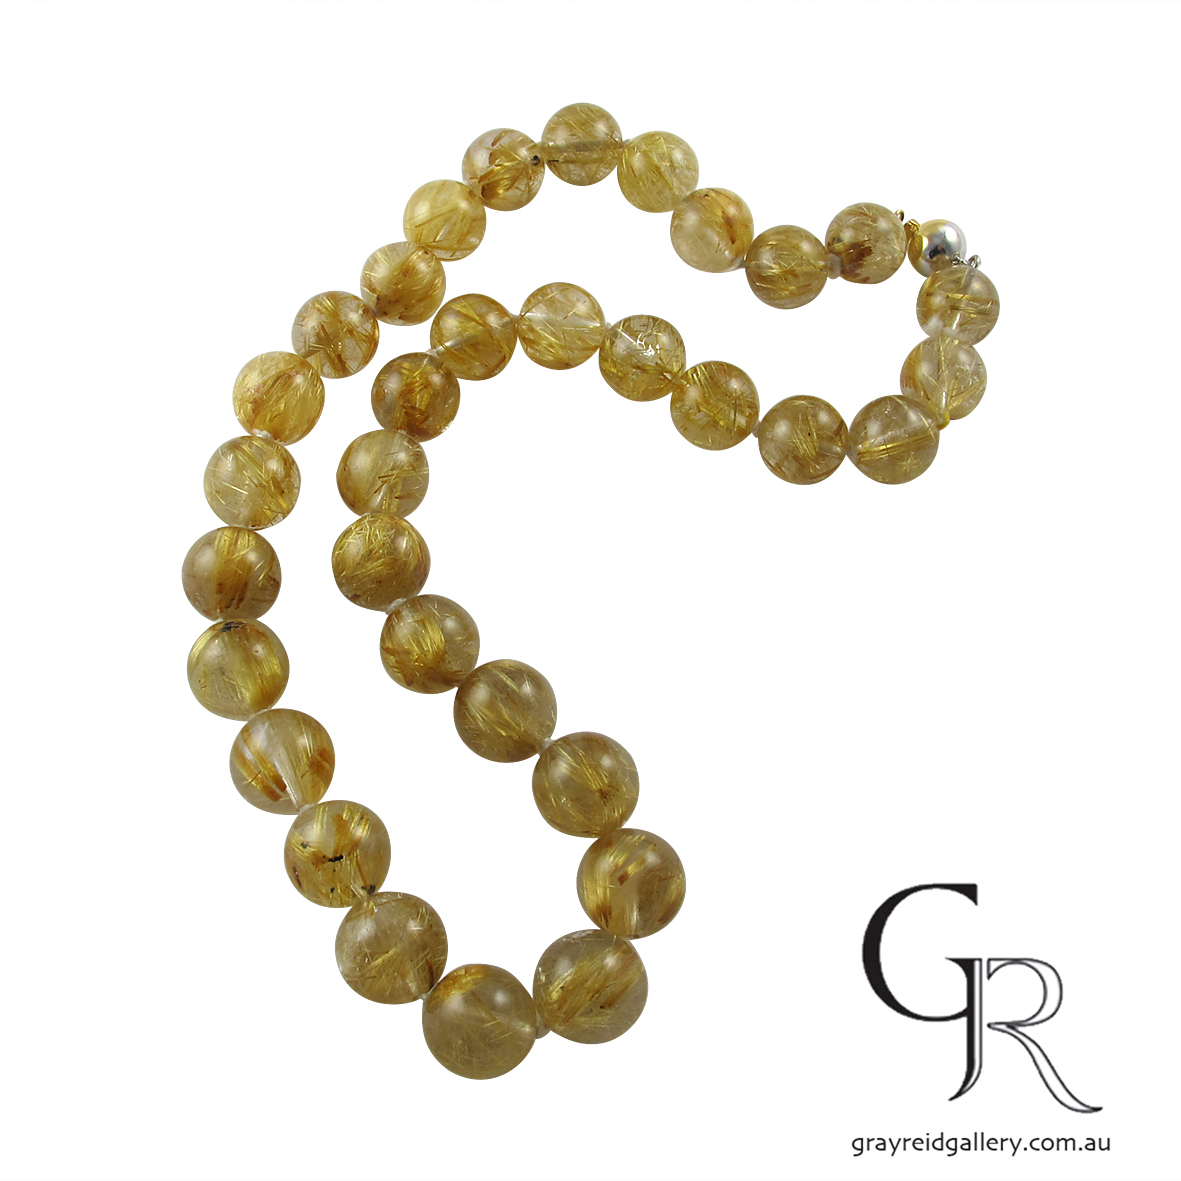 Strand of golden rutile 10mm beads on show at Gray Reid Gallery